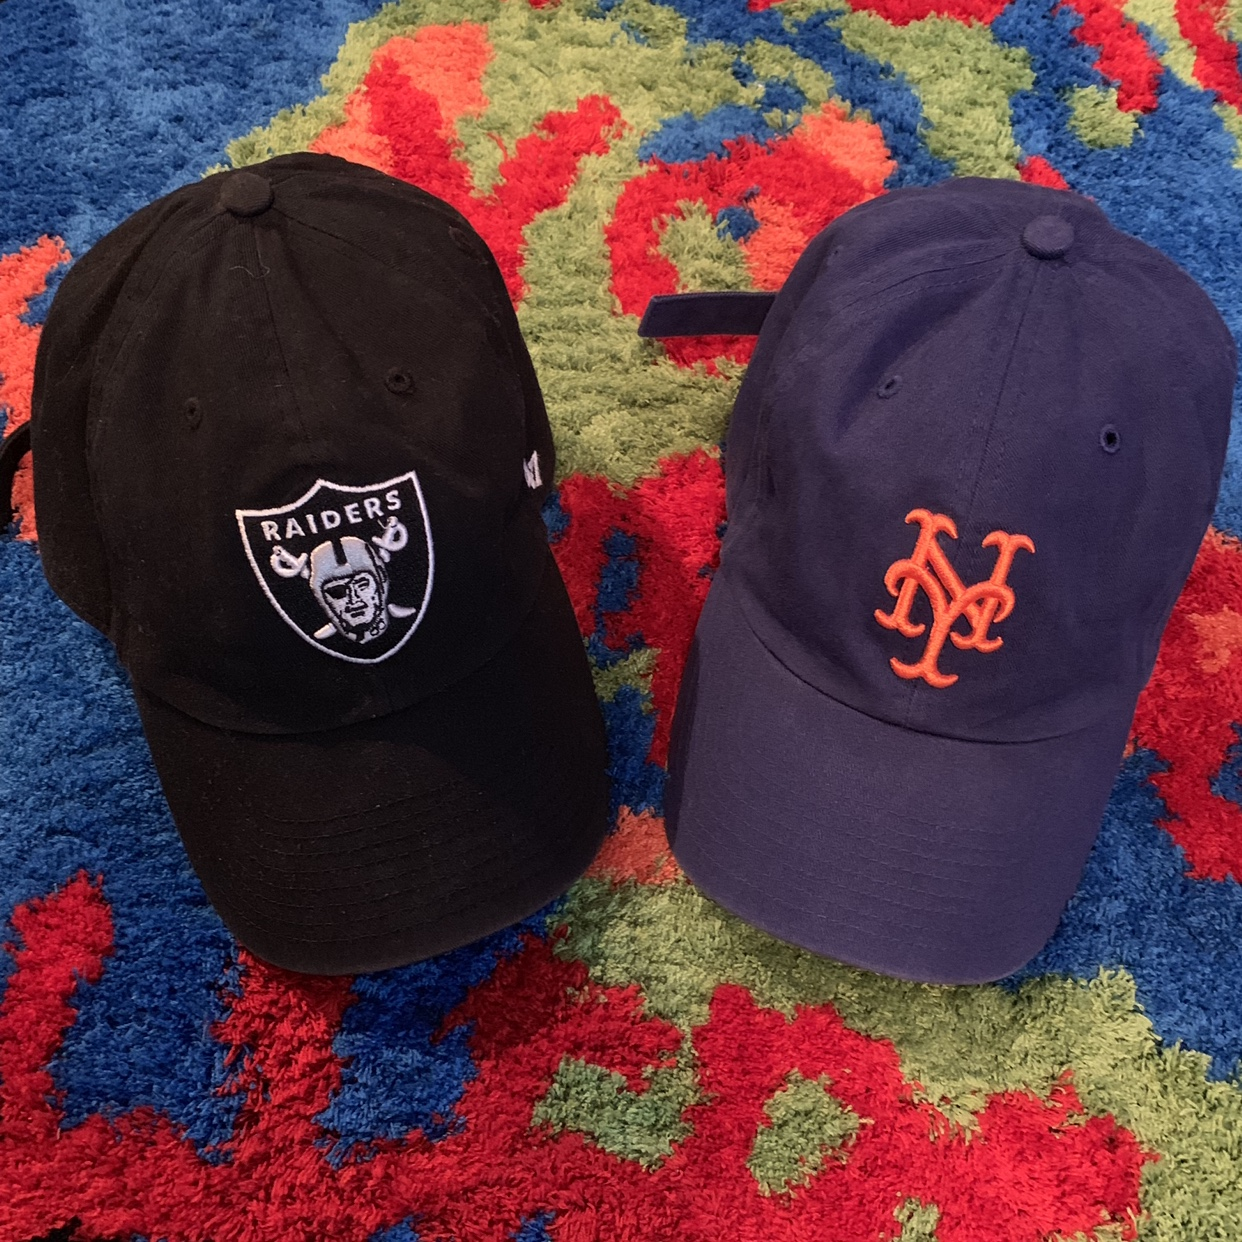 New York Mets and Oakland Raiders 47 Brand Dad hats